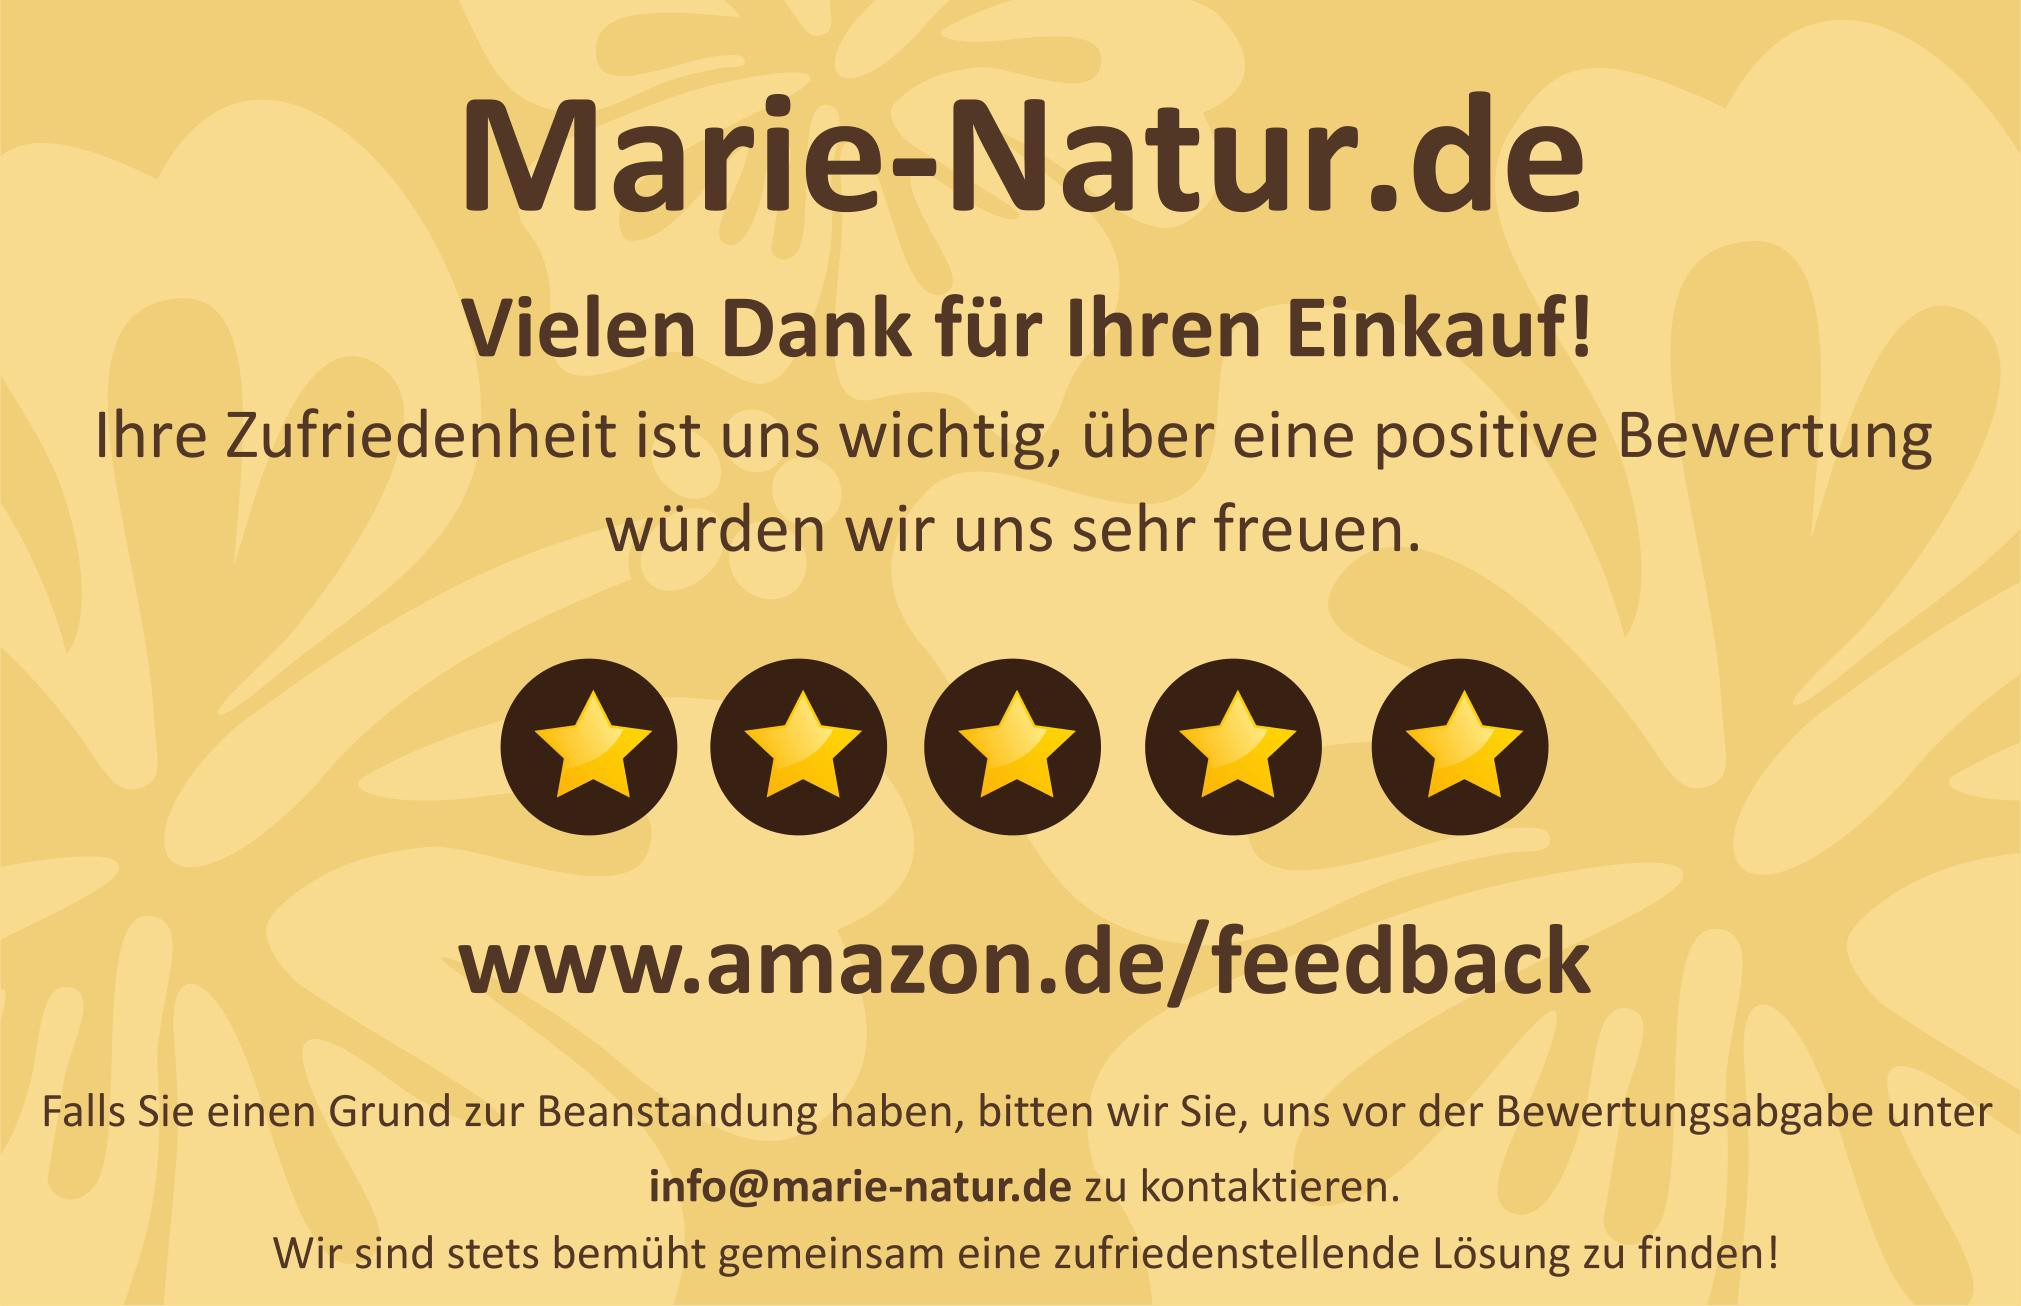 Business card for Amazon Feedback